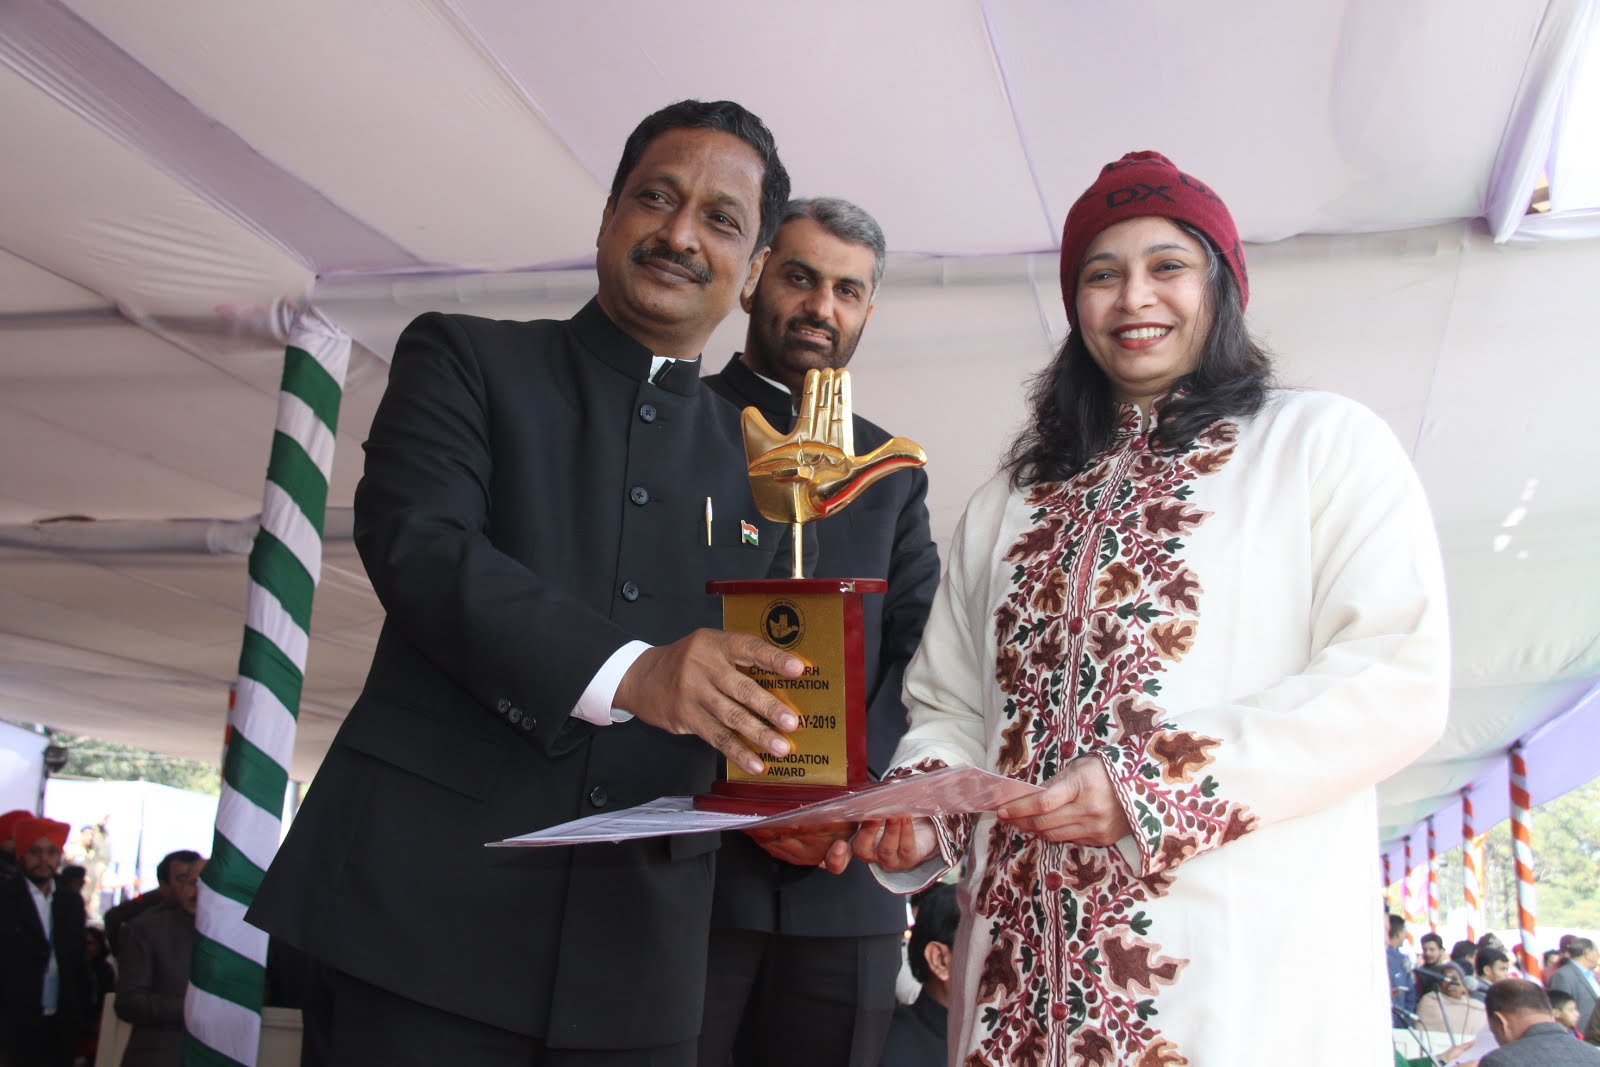 Republic Day Award 2019